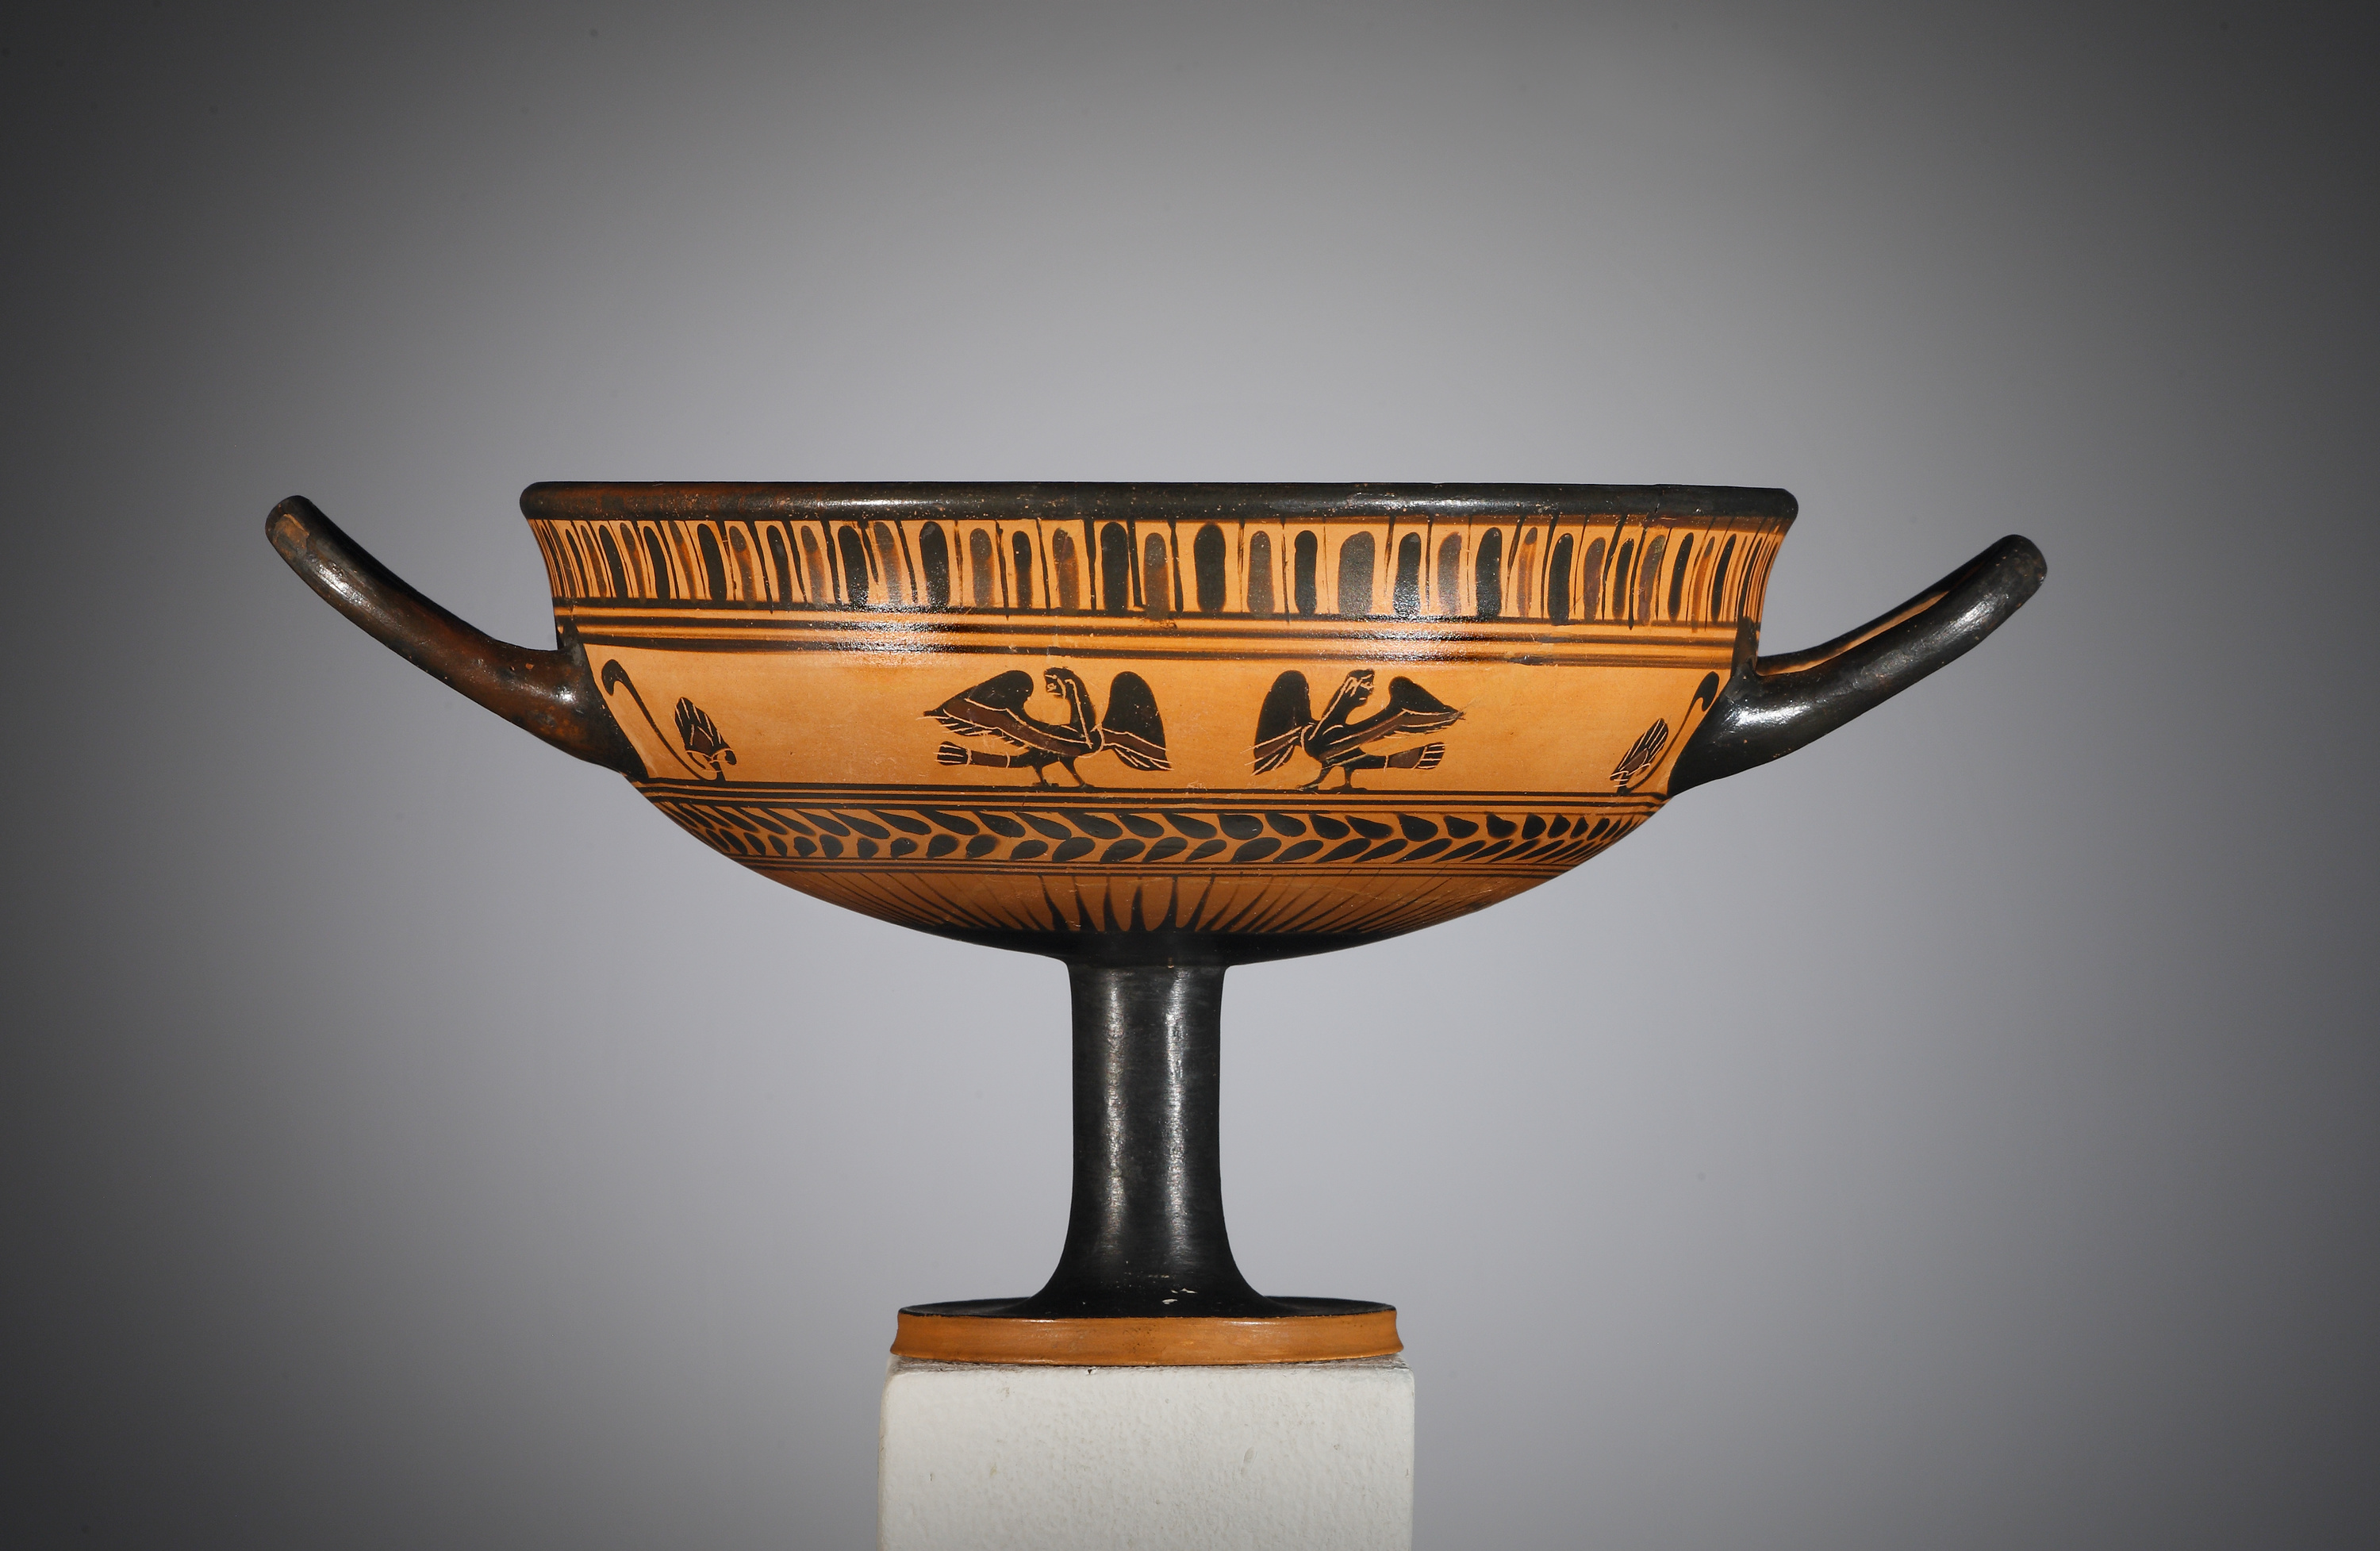 Lot 19 - An Attic Black-figure Little-master Cassel Cup with Sirens